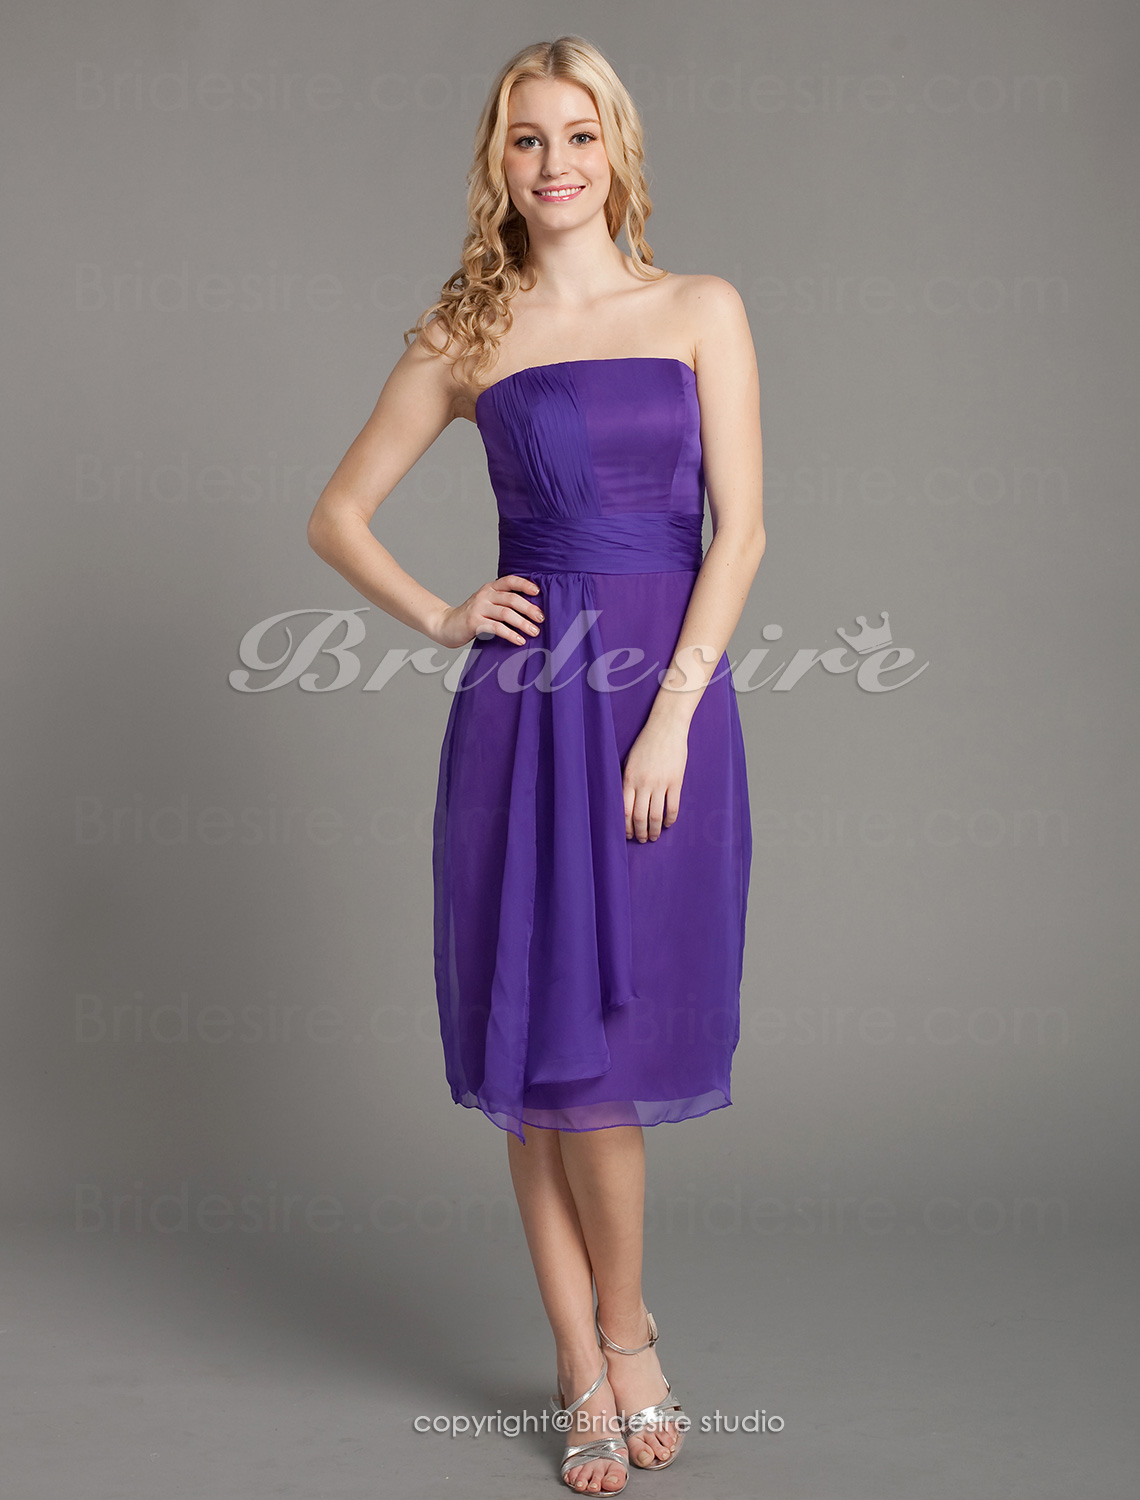 Sheath/ Column Draped Chiffon Knee-length Strapless Bridesmaid Dress